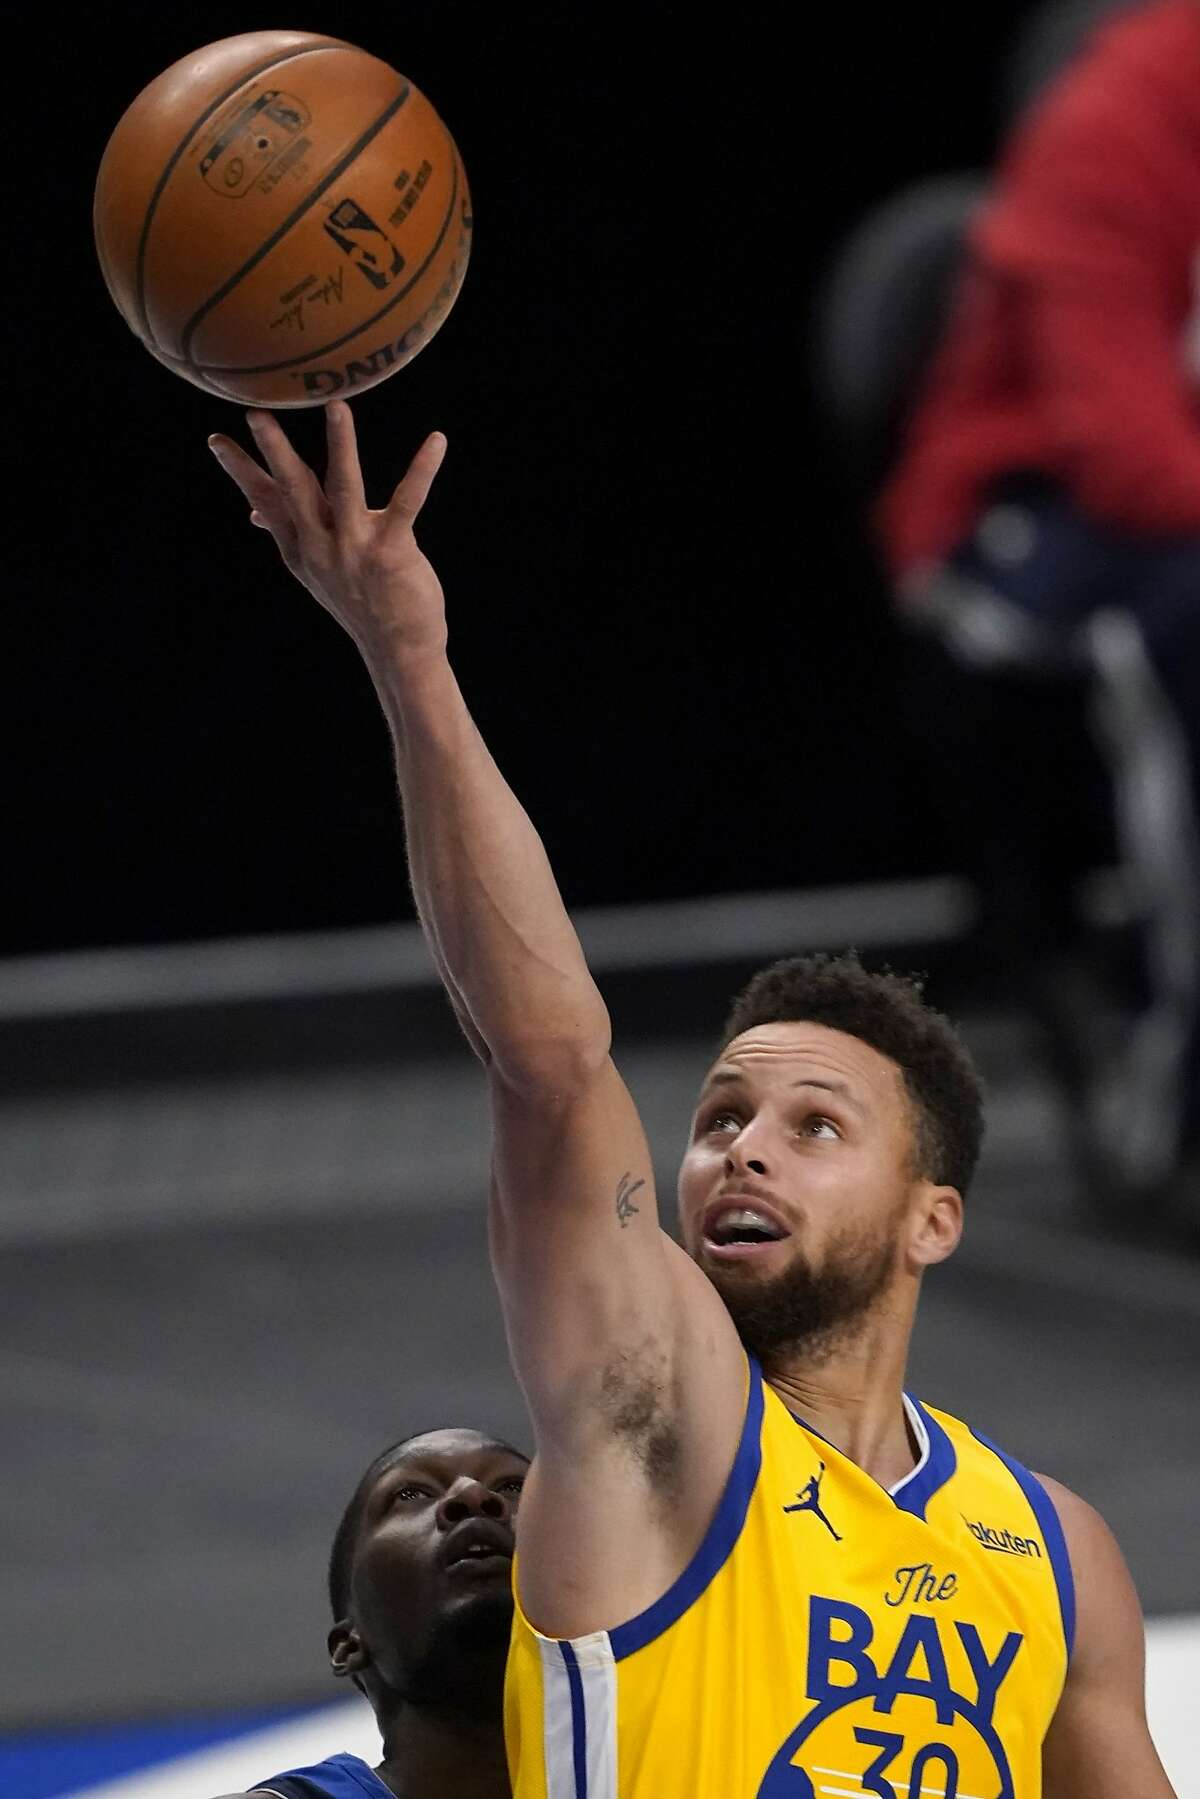 Golden State Warriors' Stephen Curry scored 28 points in 30 minutes against Dallas on Thursday night.